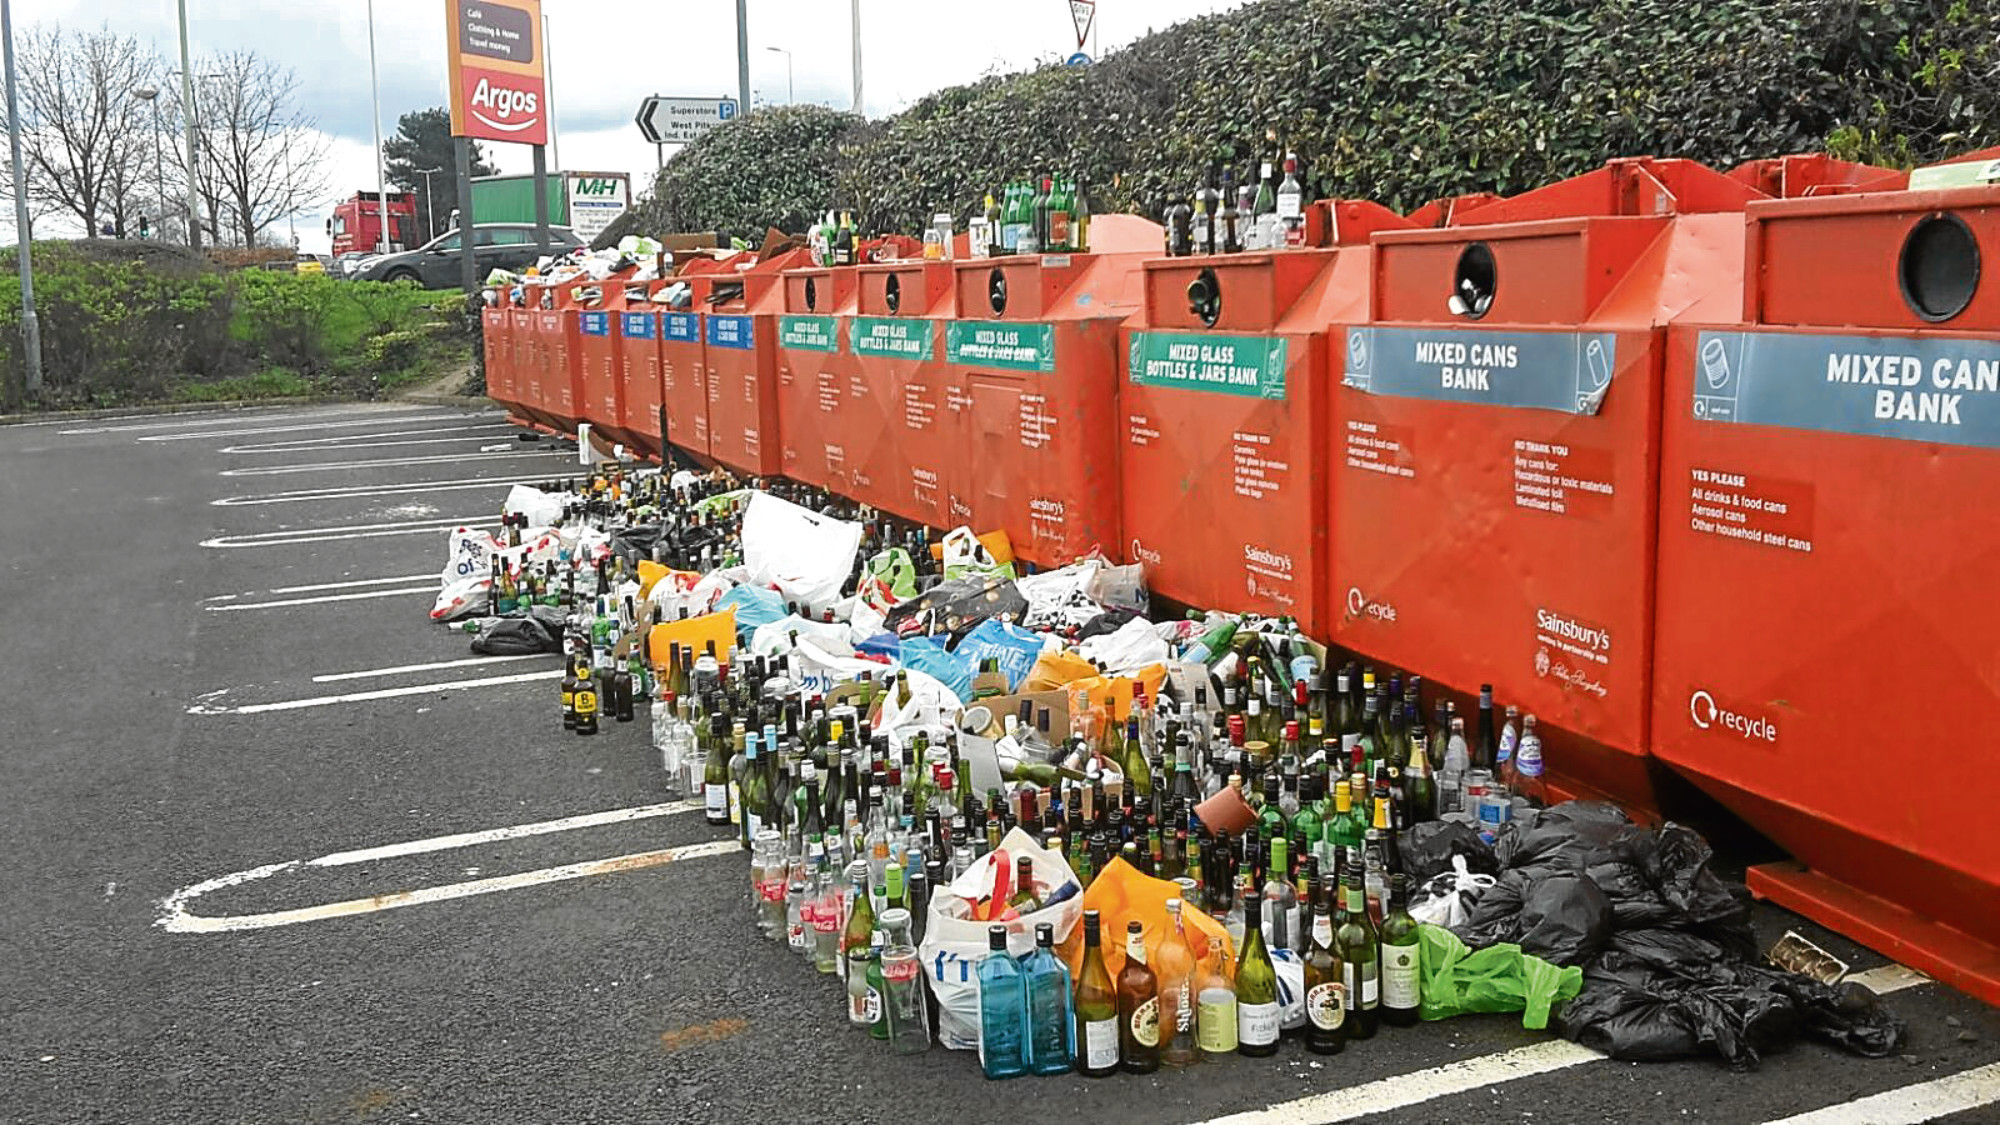 Hundreds of bottles left lying beside the overflowing recycling bins at Sainsbury's.